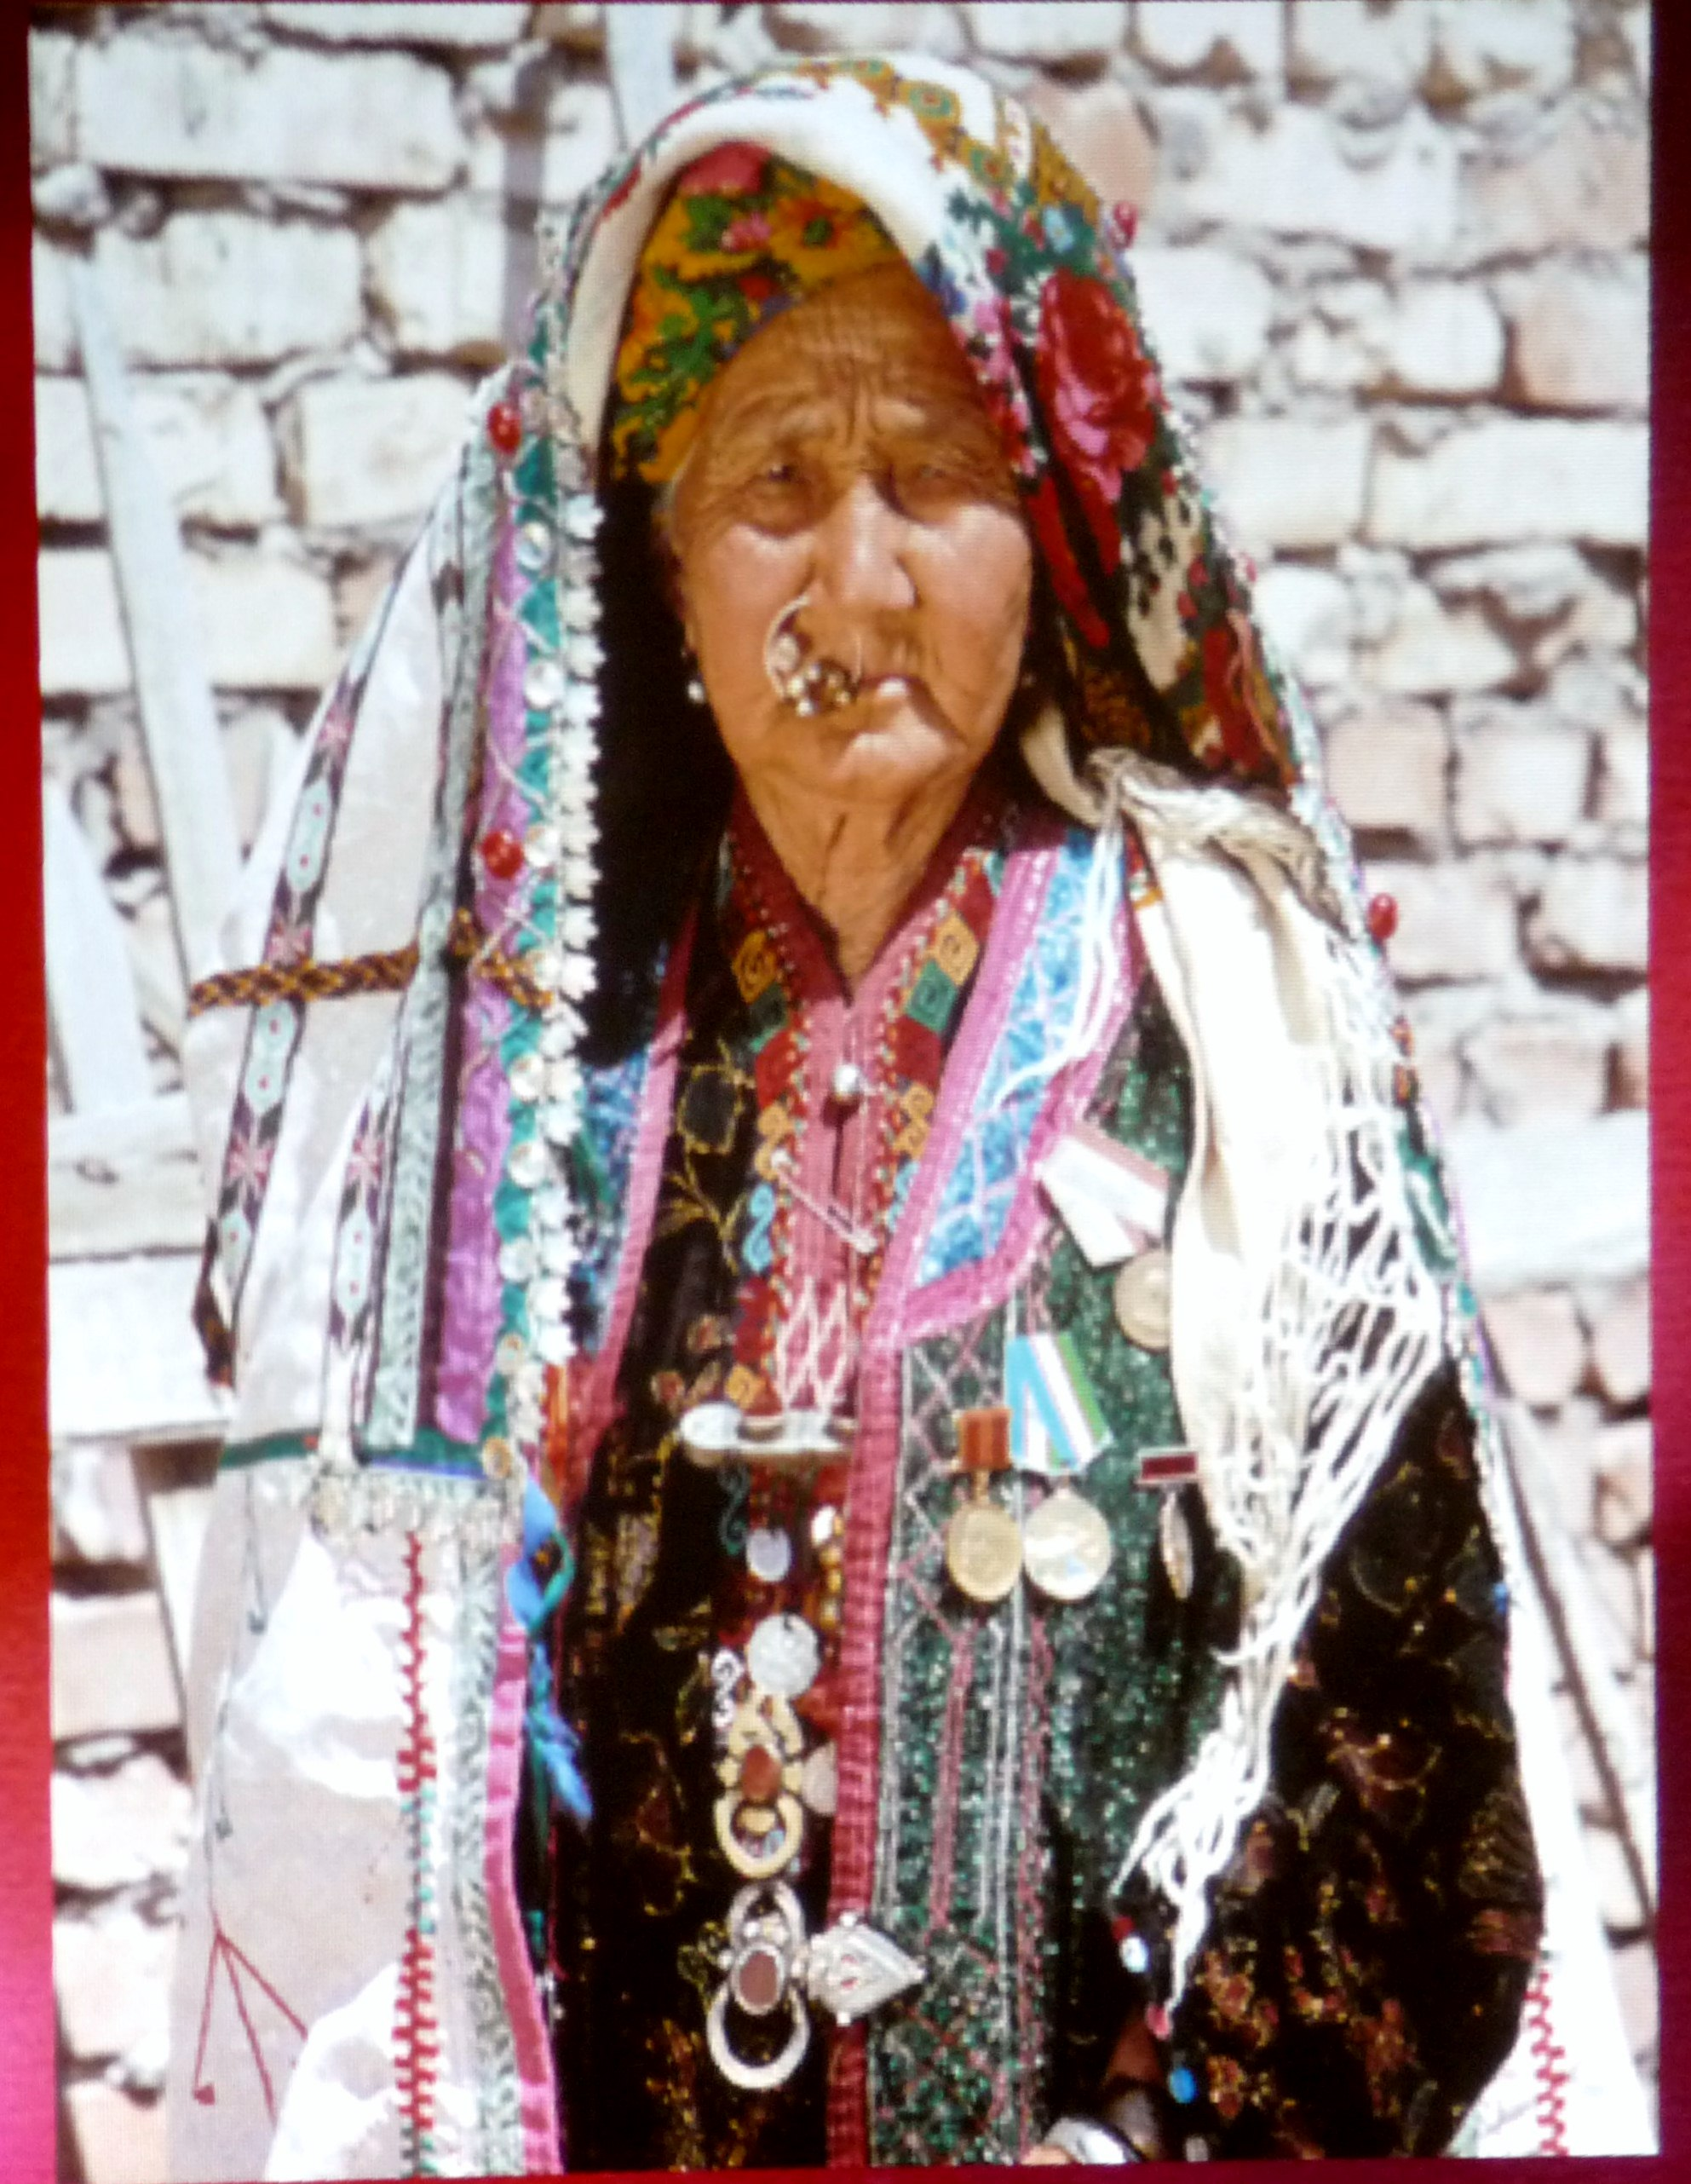 one of the Qaraqalpaq women wearing traditional embroidered clothing